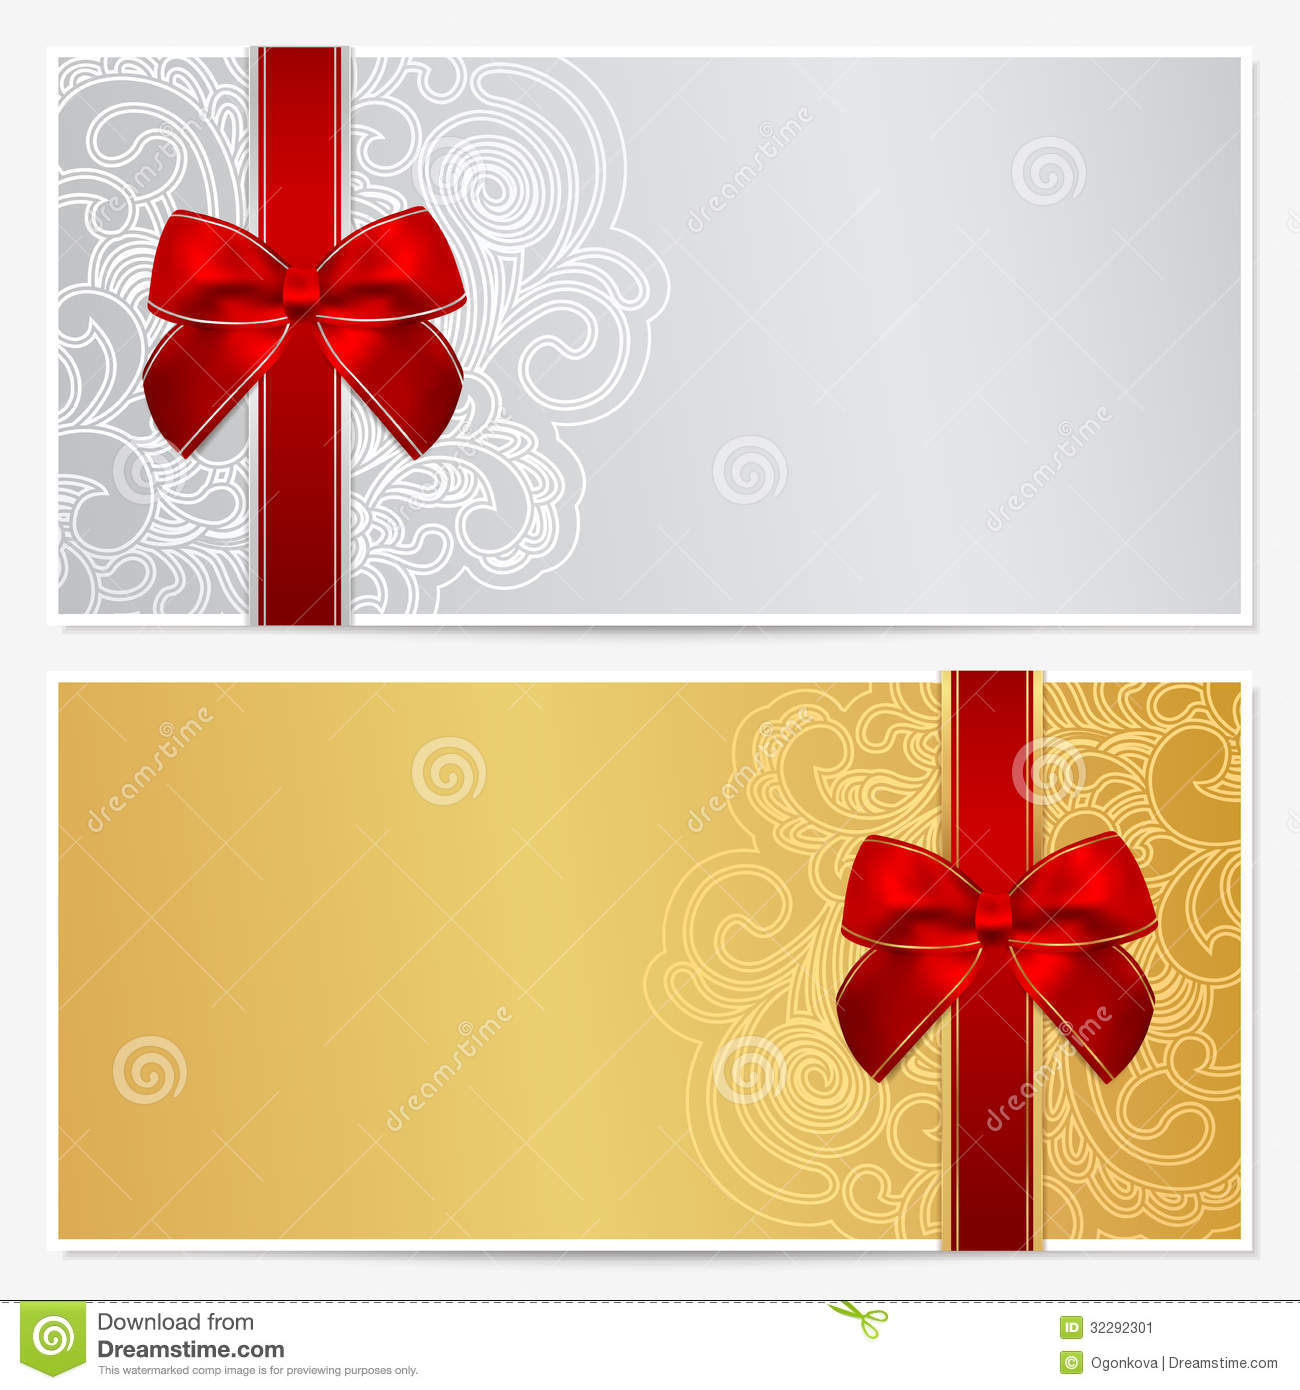 Gift Certificate Border Templates